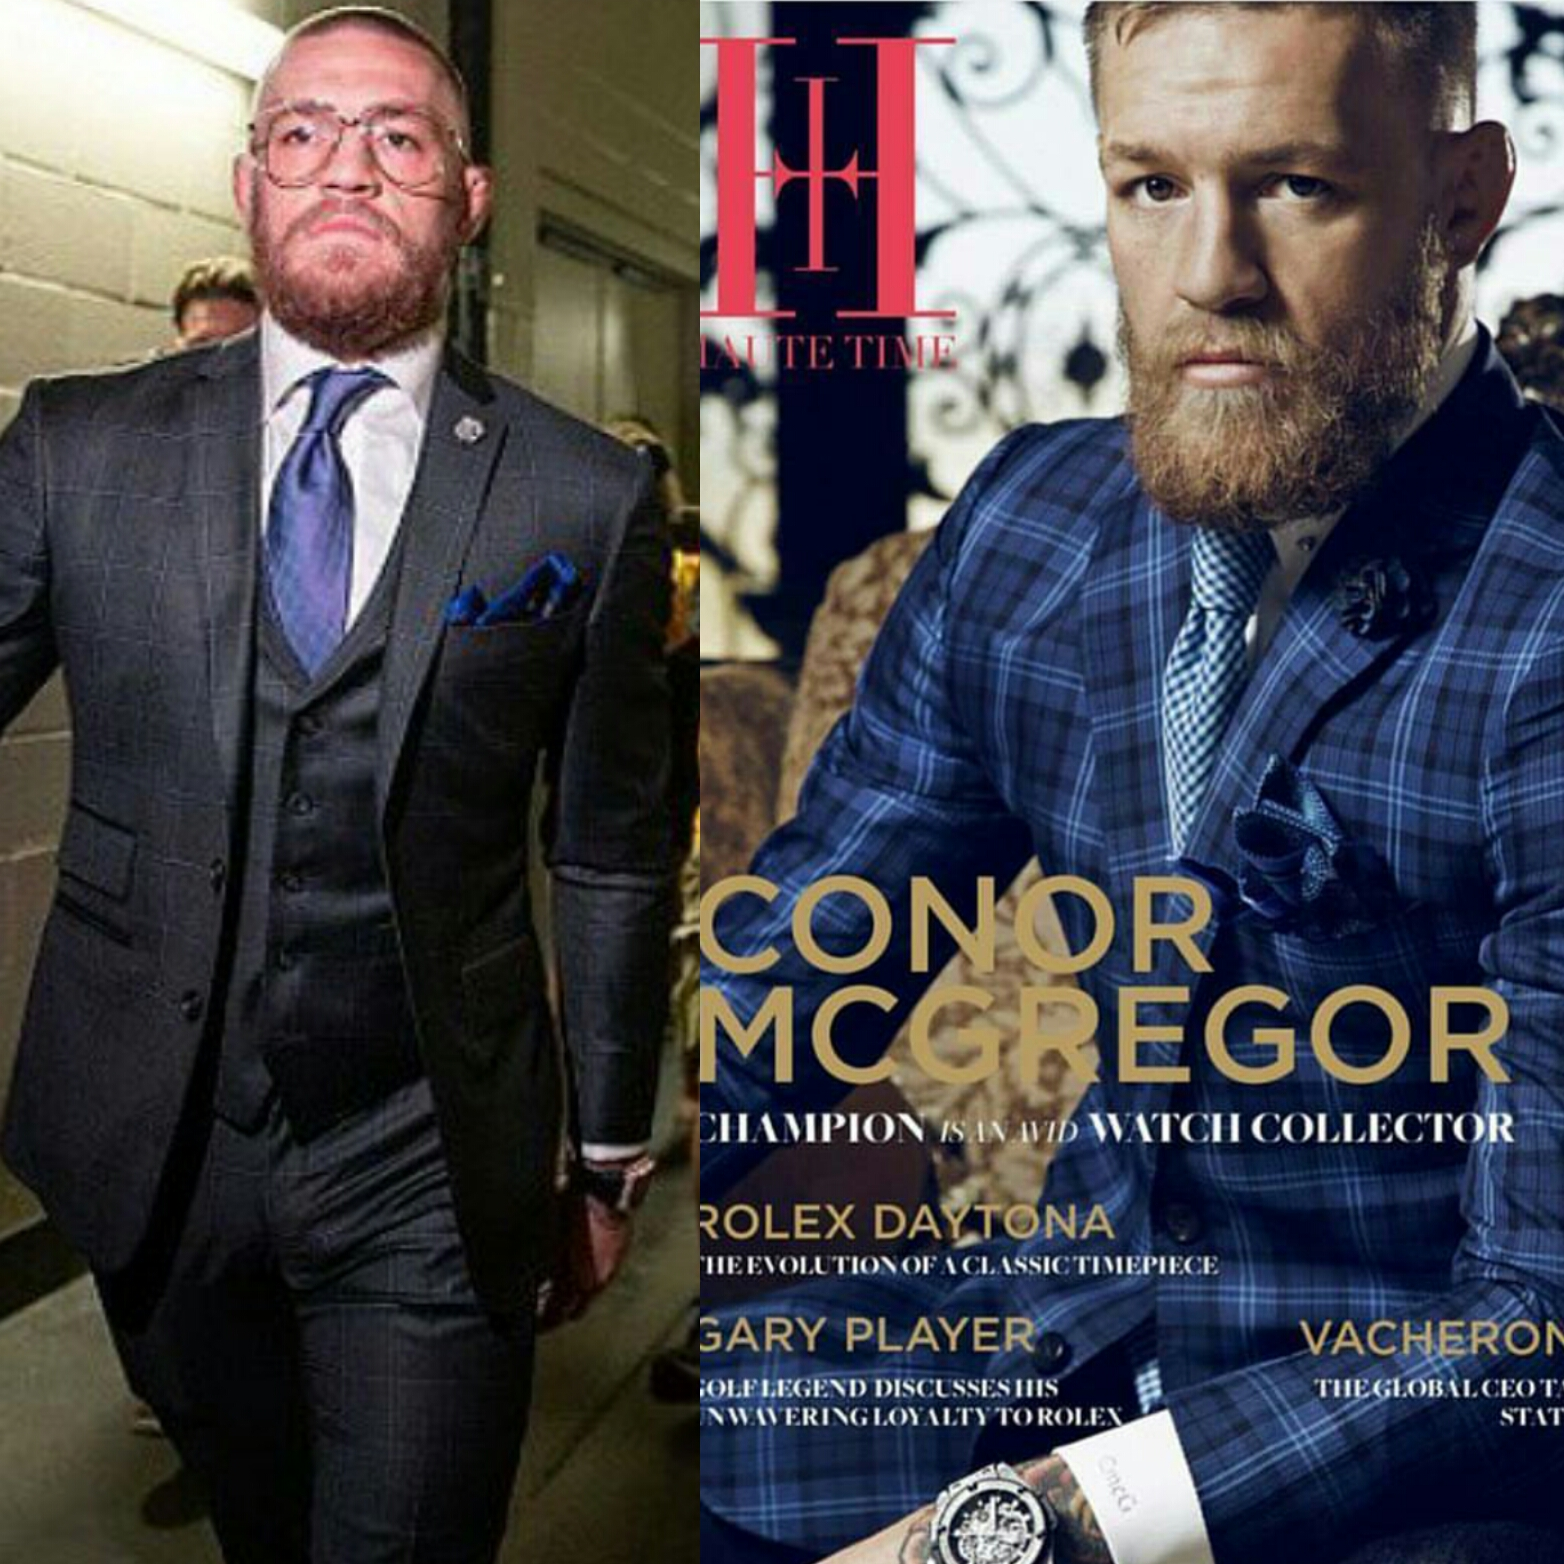 STYLE: Conor McGregor Wears Custom David August Suits For Nate Diaz Fight UFC 202 & Haute Magazine Cover